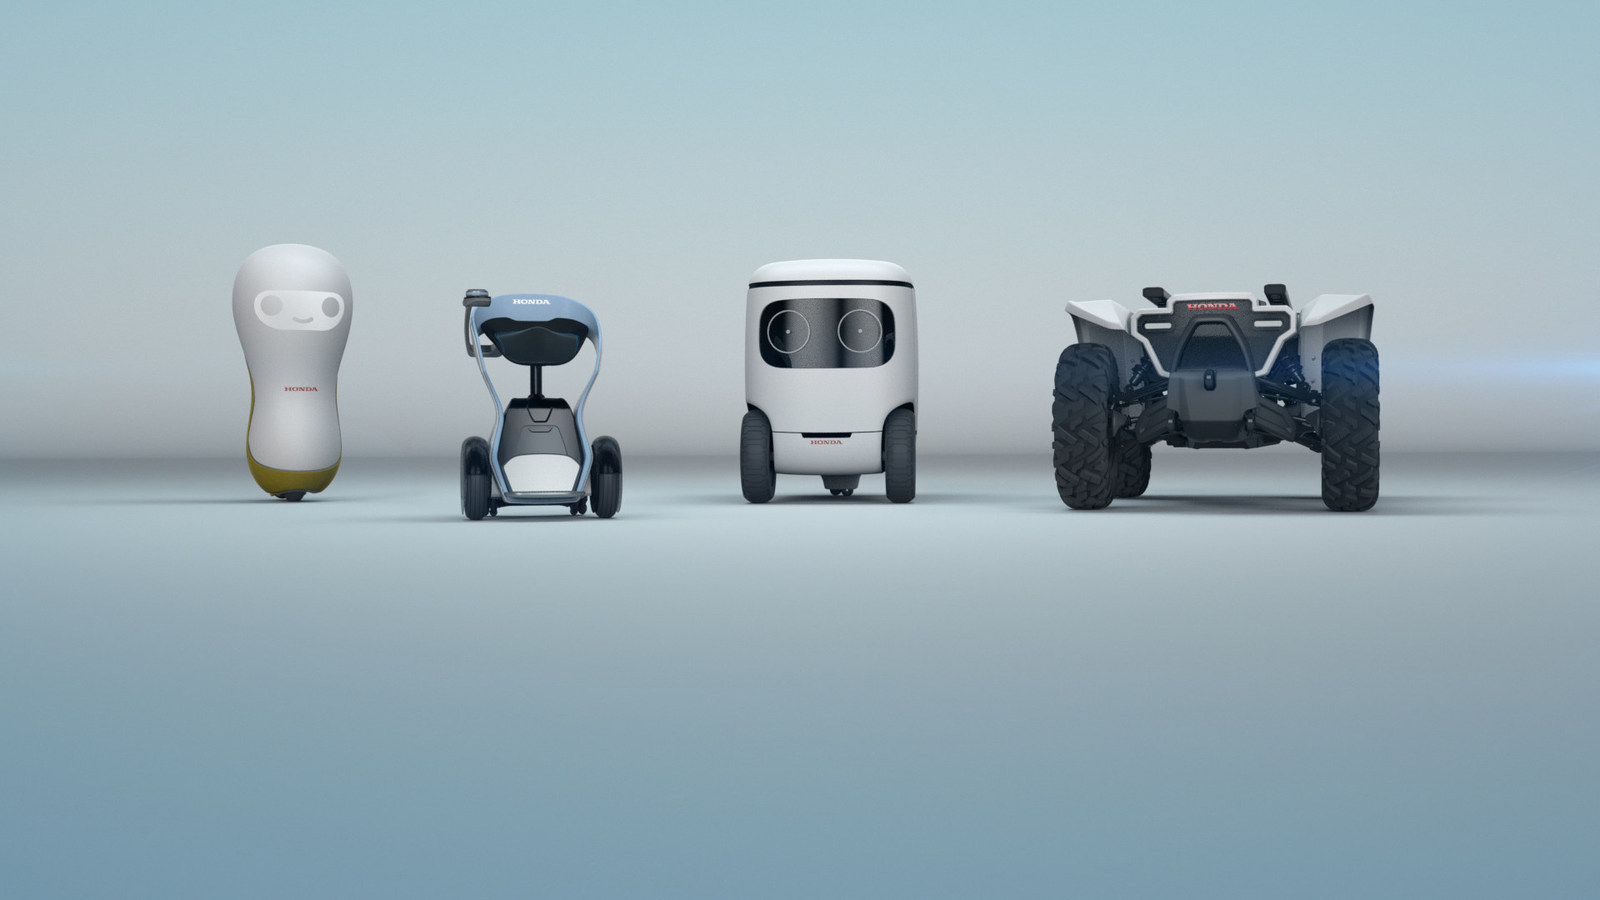 At CES 2018, Honda will unveil its new 3E (Empower, Experience, Empathy) Robotics Concept, demonstrating Honda's vision of a society where robotics and AI can assist people in a multitude of situations, from disaster recovery and recreation to learning from human interaction to become more helpful and empathetic. (PRNewsfoto/Honda)